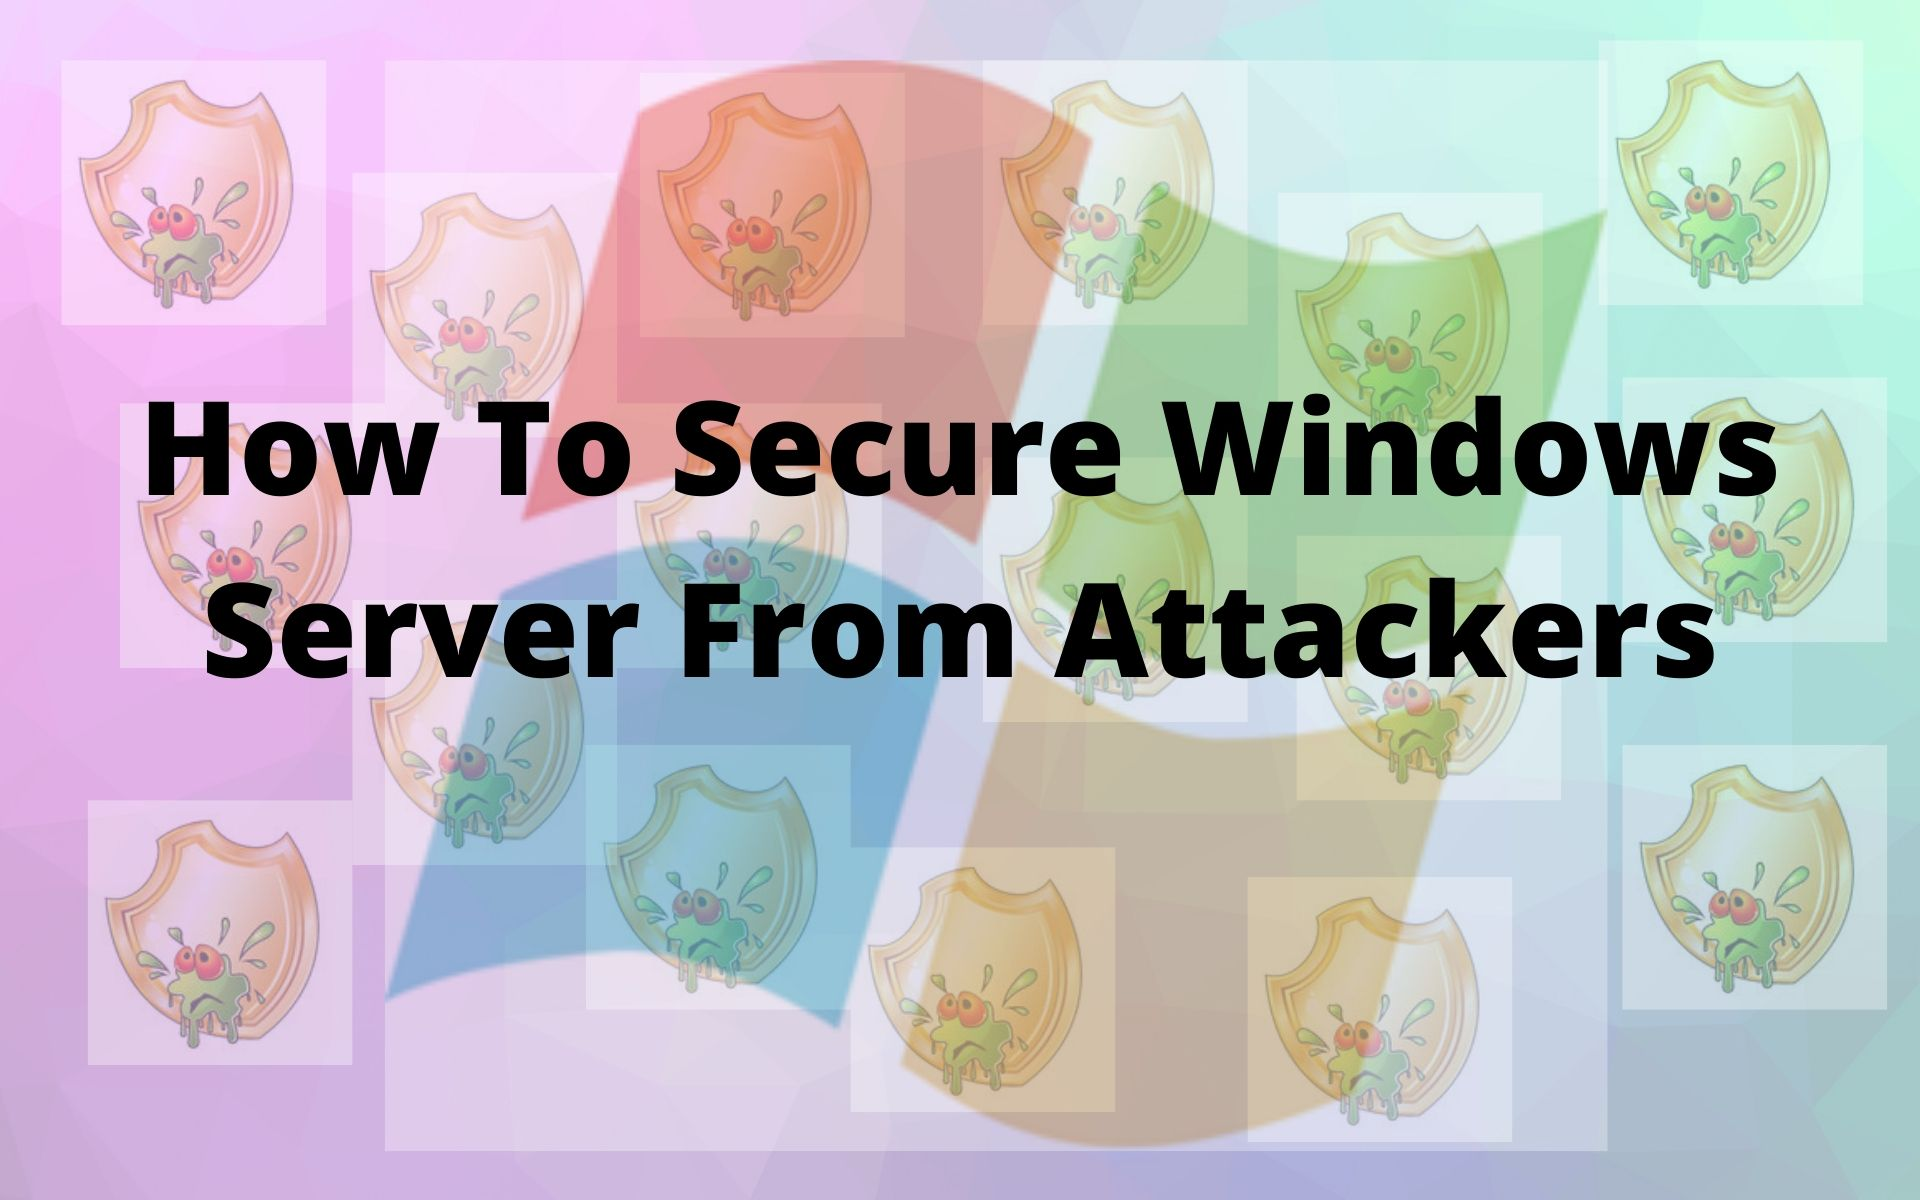 How To Secure Windows Server From Attackers